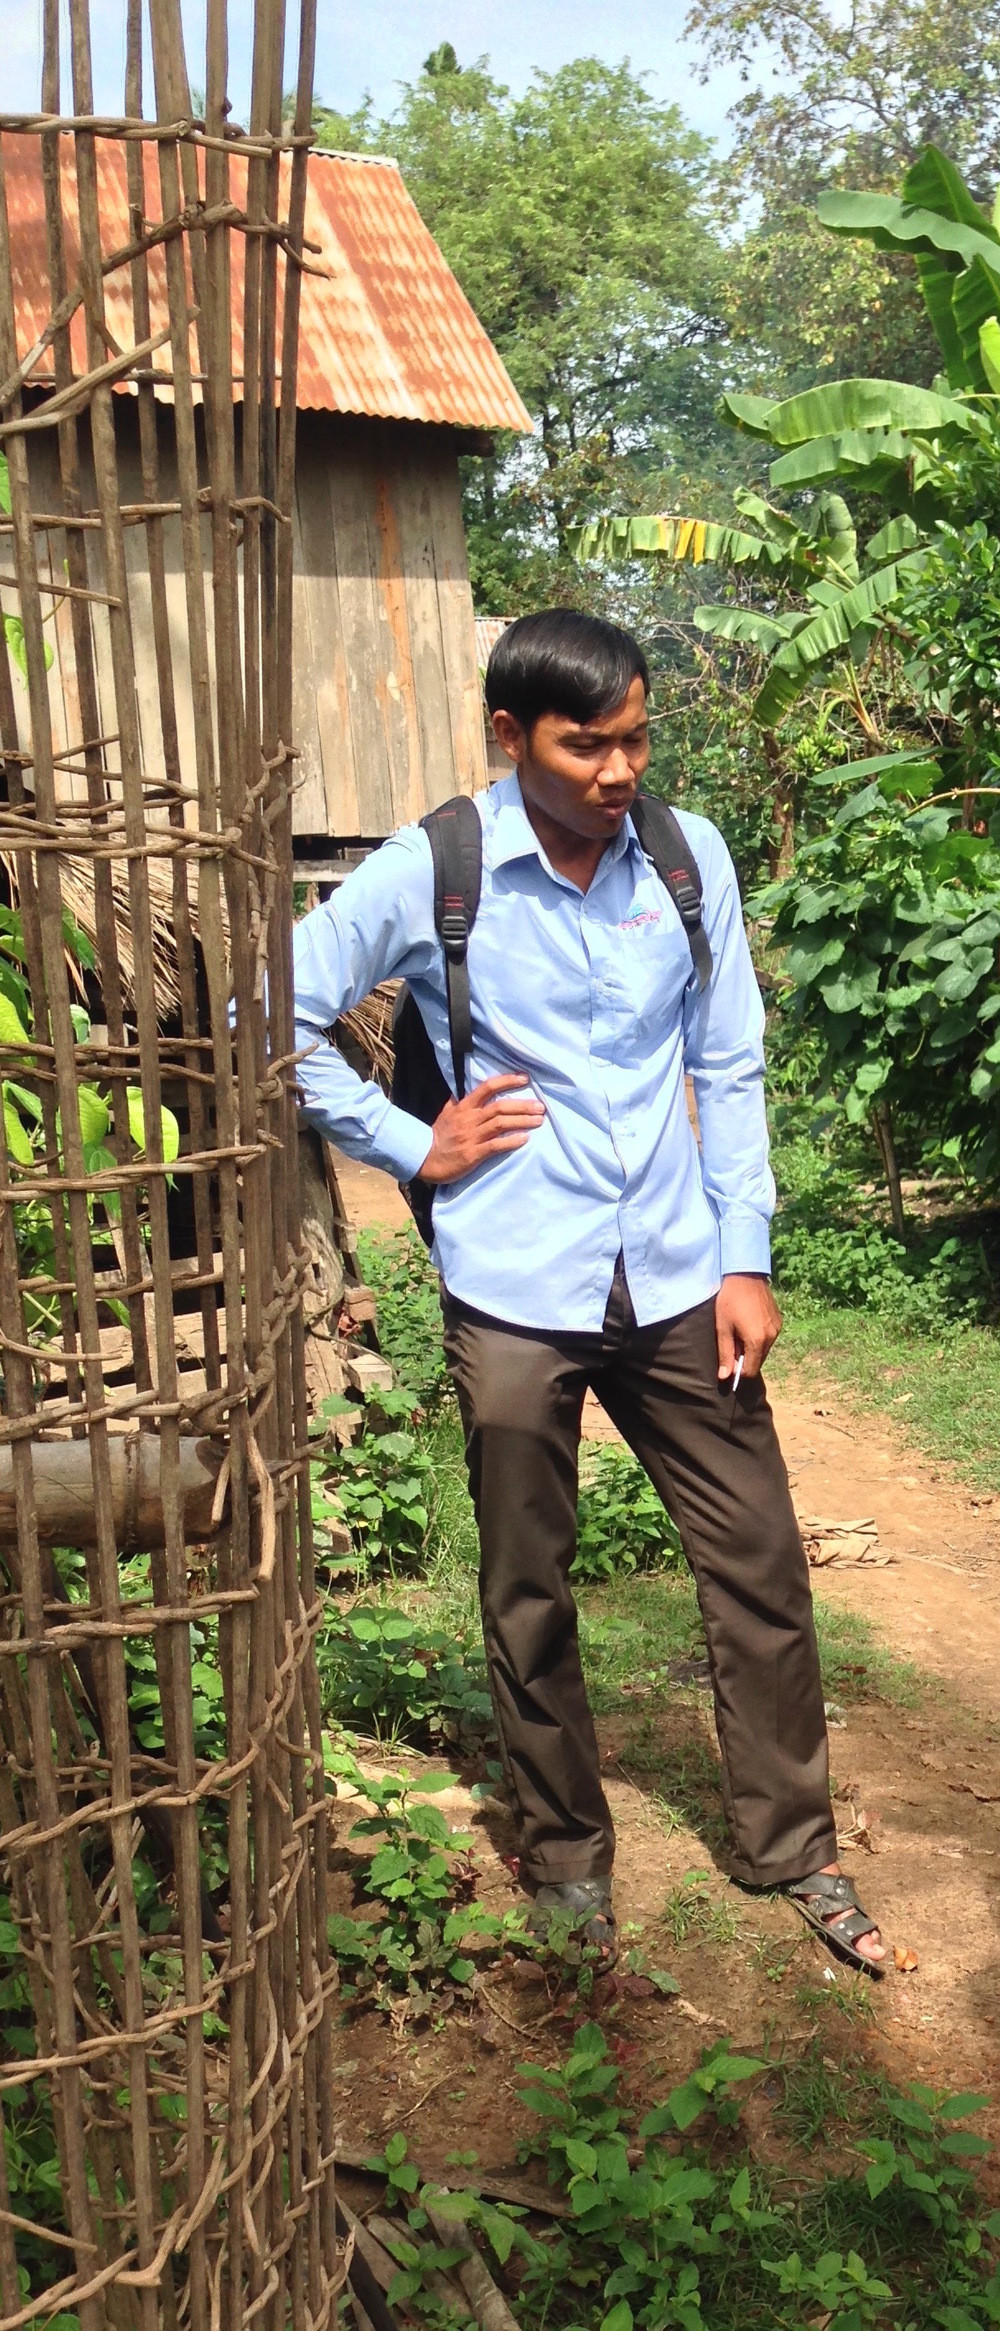 Nhap Piseth who looks after the pastors' ministry in Stung Treng